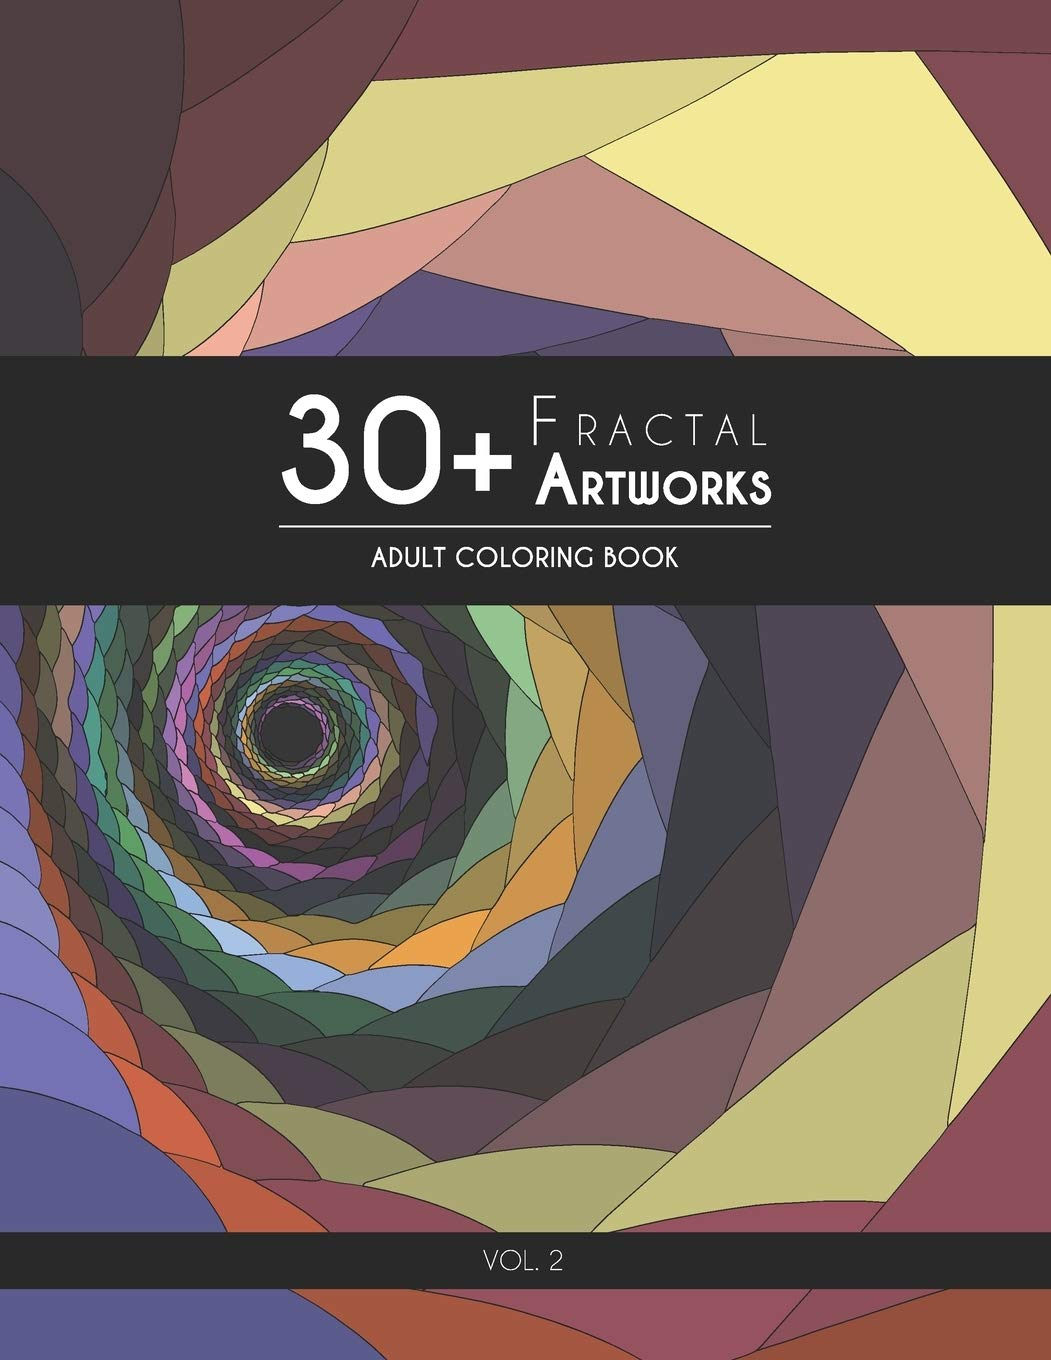 Image Of30+ Fractal Artworks: Adult Coloring Book – Vol.2